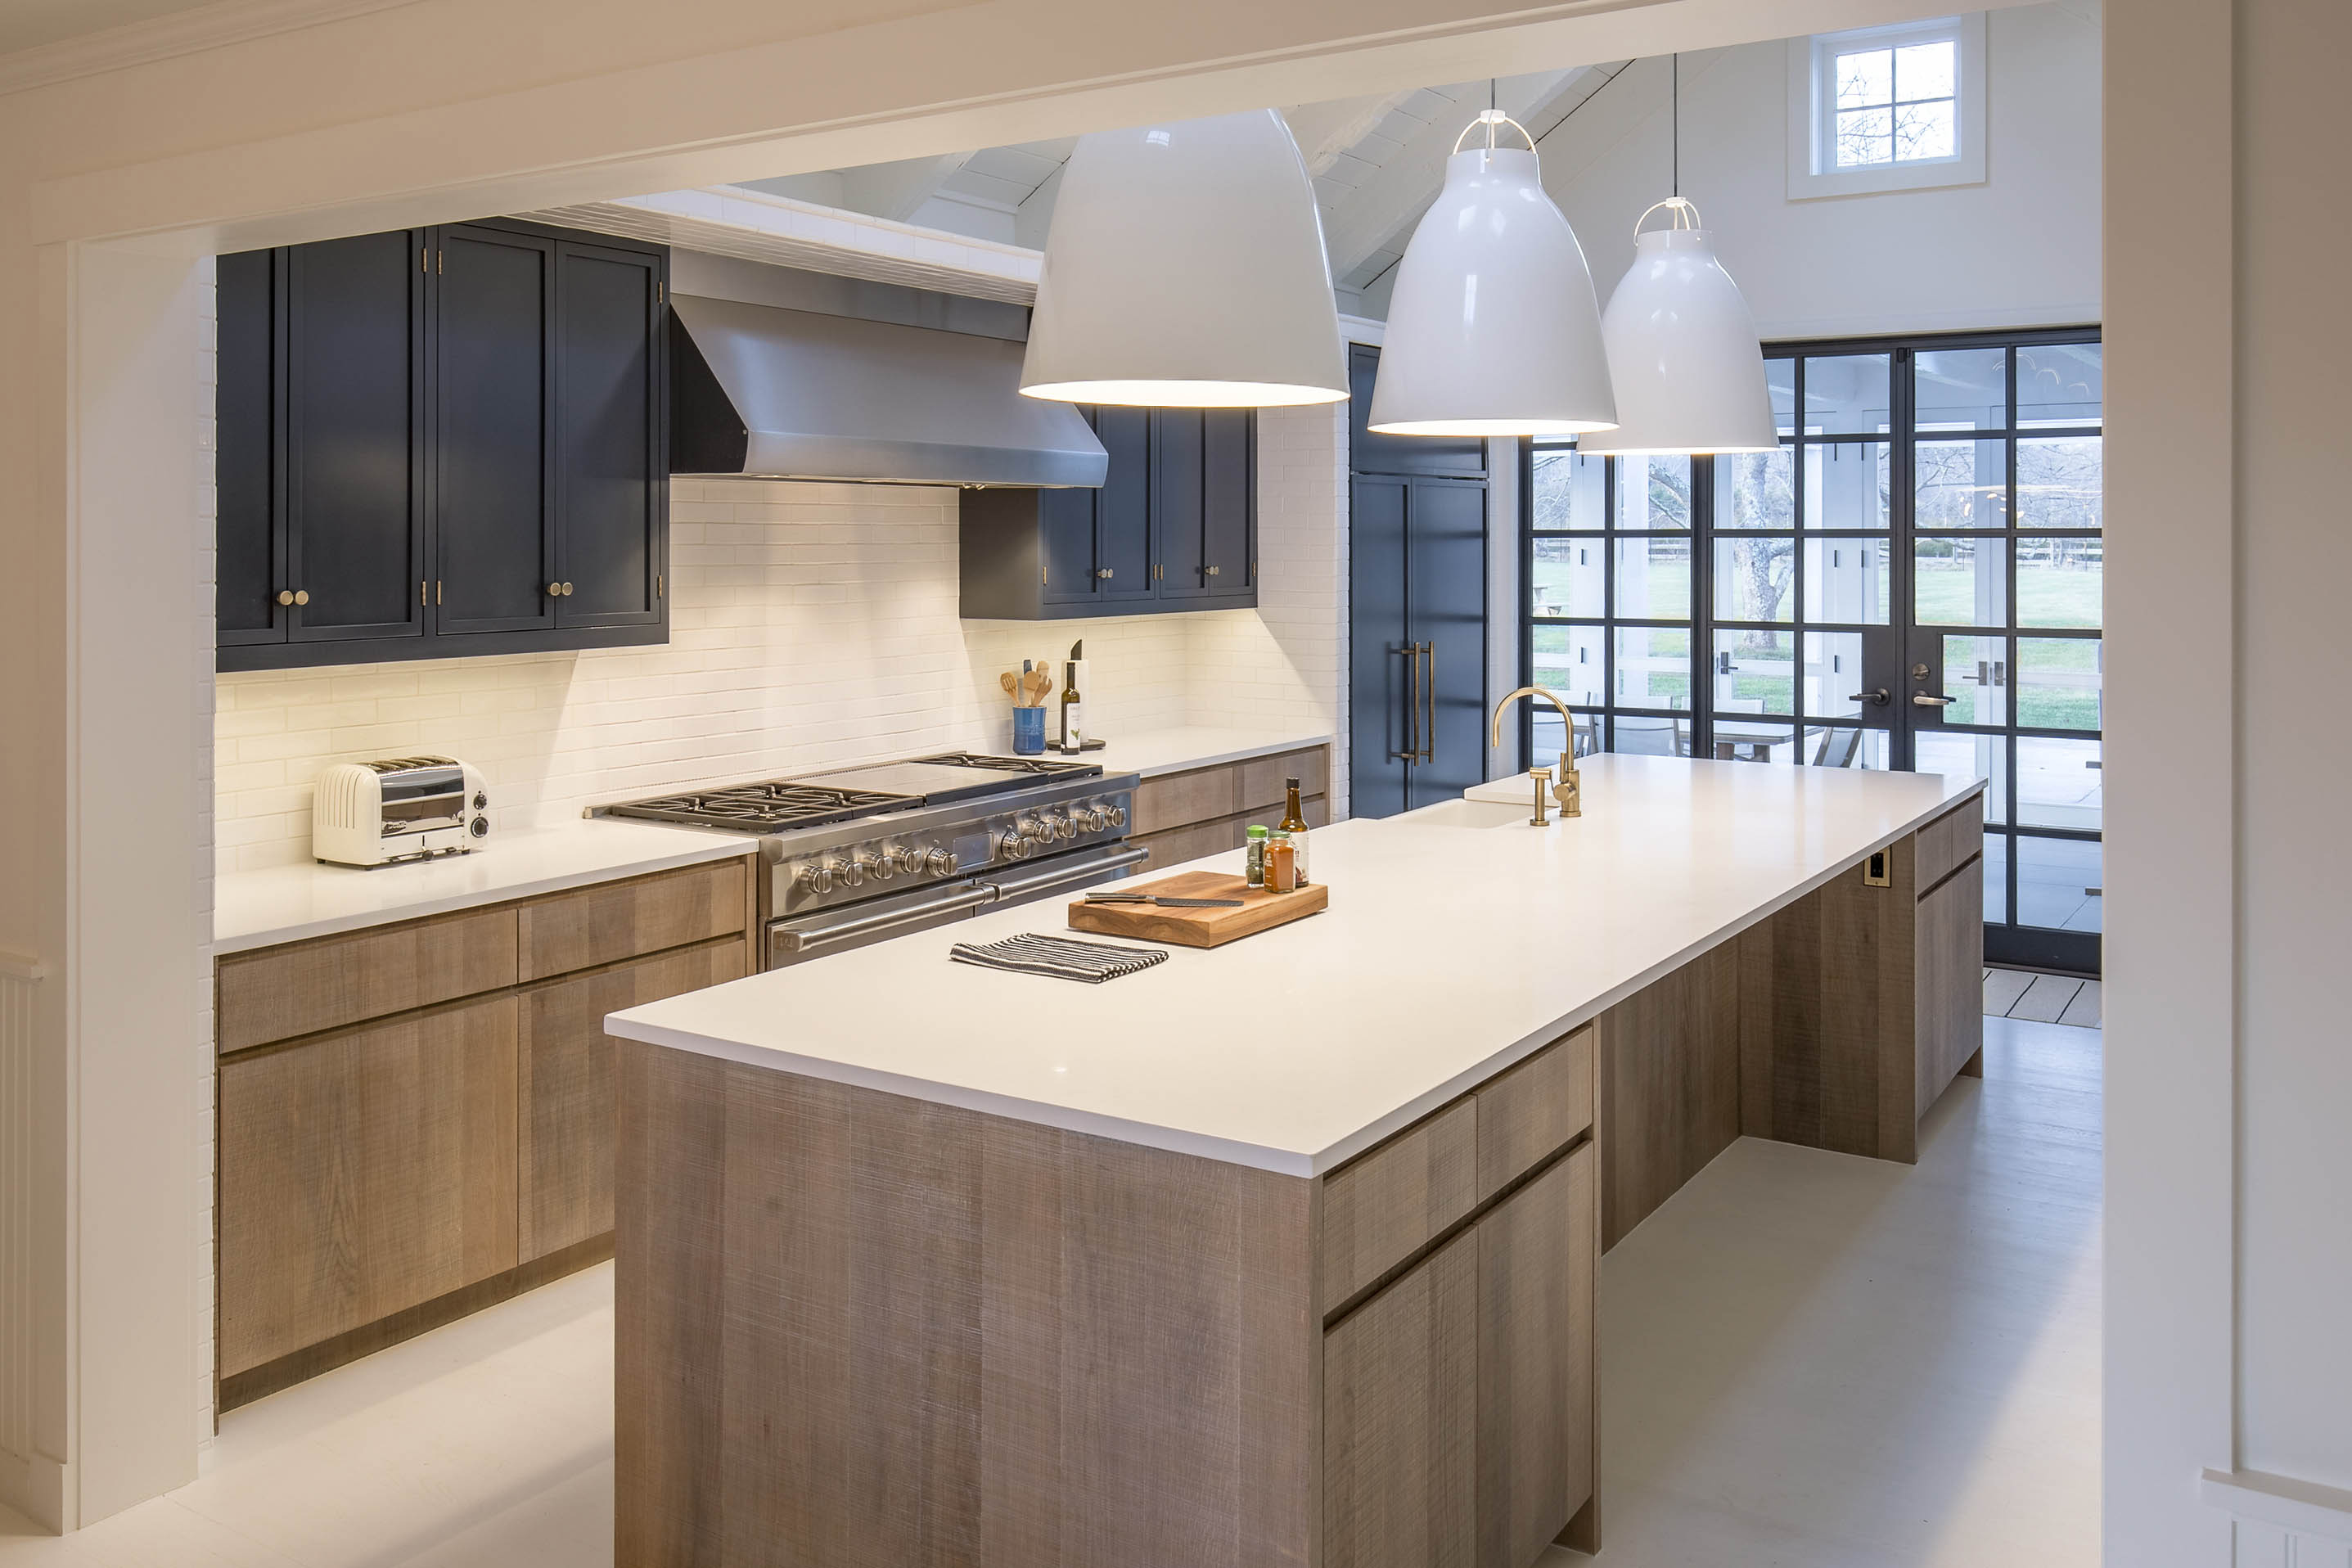 Hamptons Cabinetry Design Kitchen Cabinets Countertops